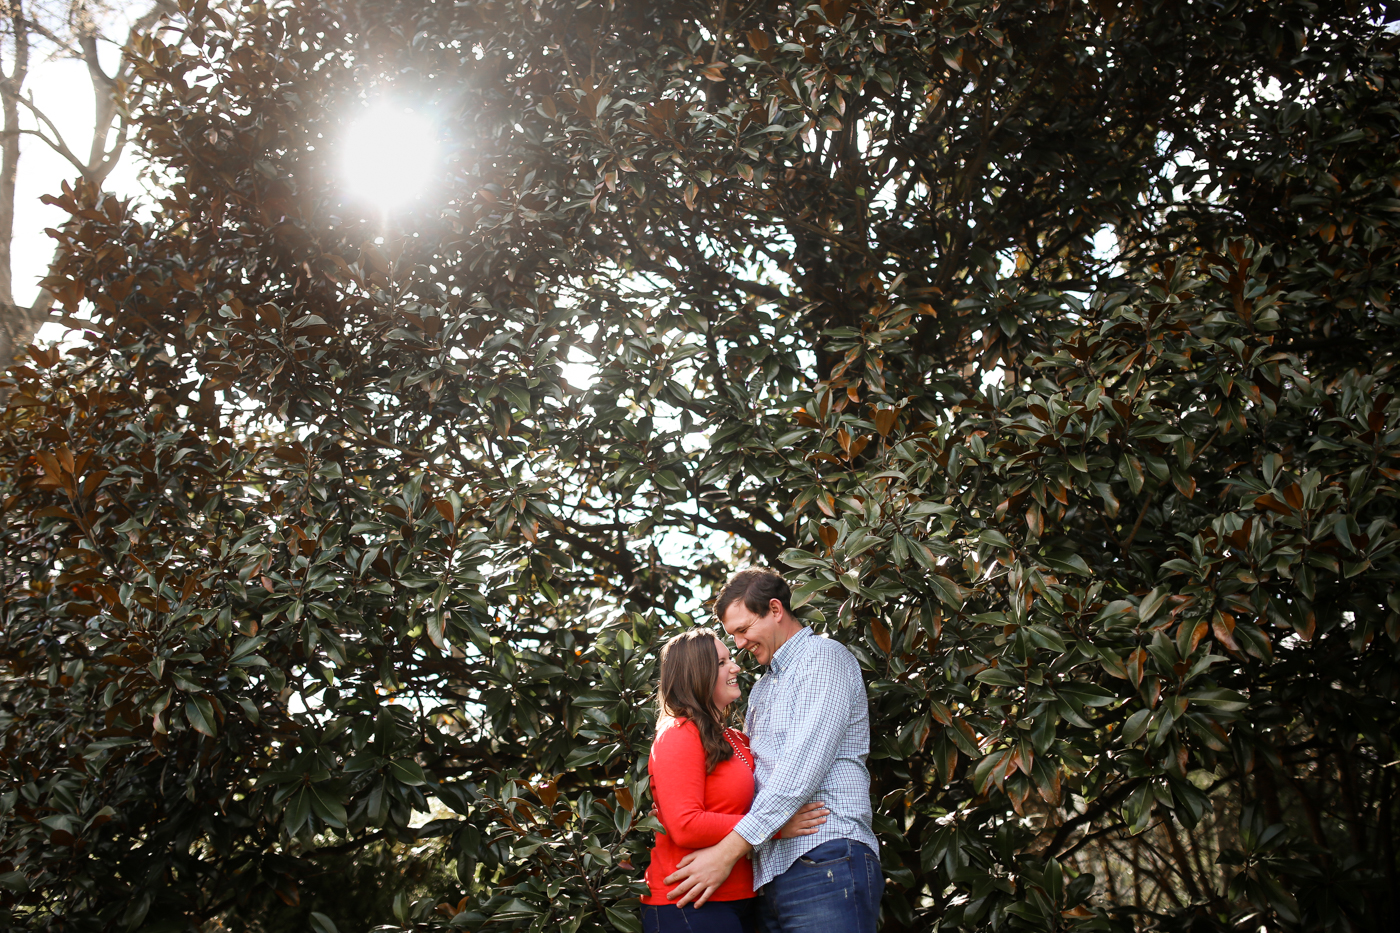 White-hall-louisville-kentucky-engagement-best-wedding-photographer-6.jpg